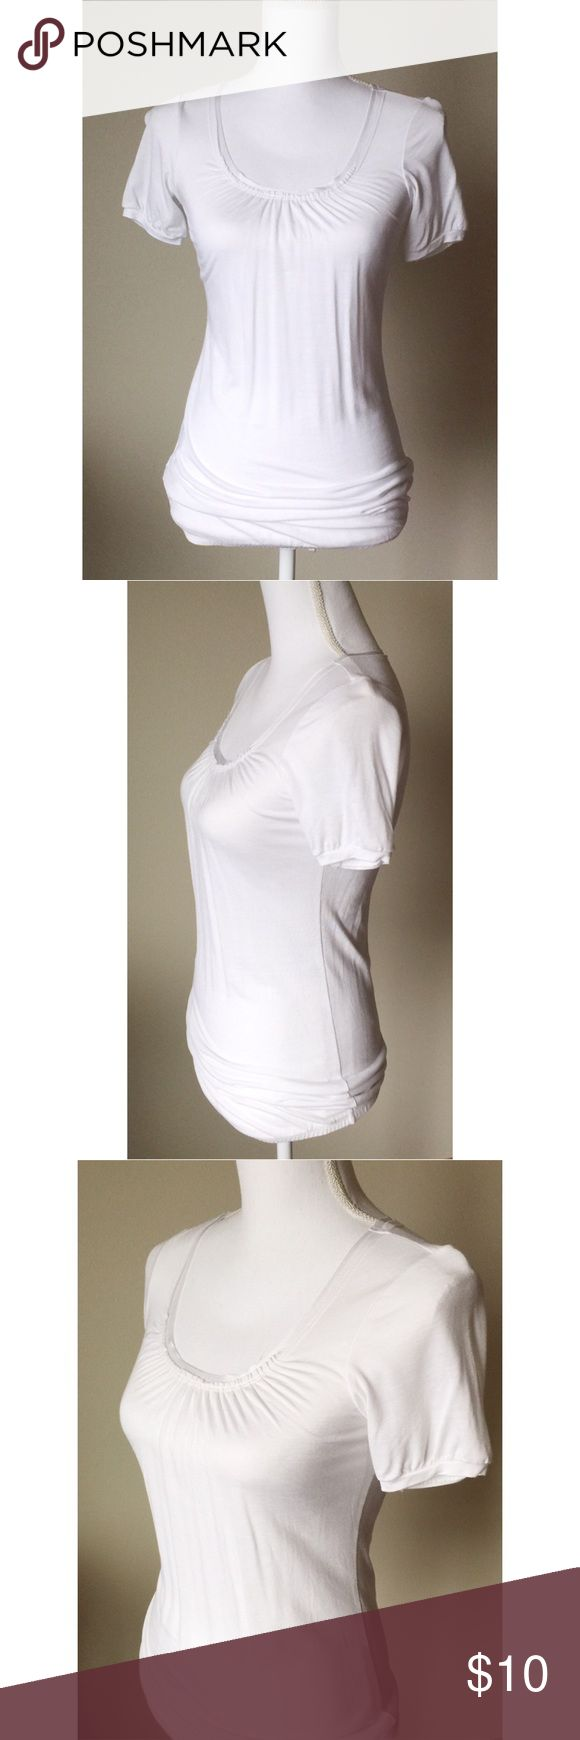 Maternity short sleeve tee Cute short sleeve tee with a satiny trim around the neckline. Technically a maternity top, but you can't tell its maternity, so could be worn by anyone. Tops Tees - Short Sleeve